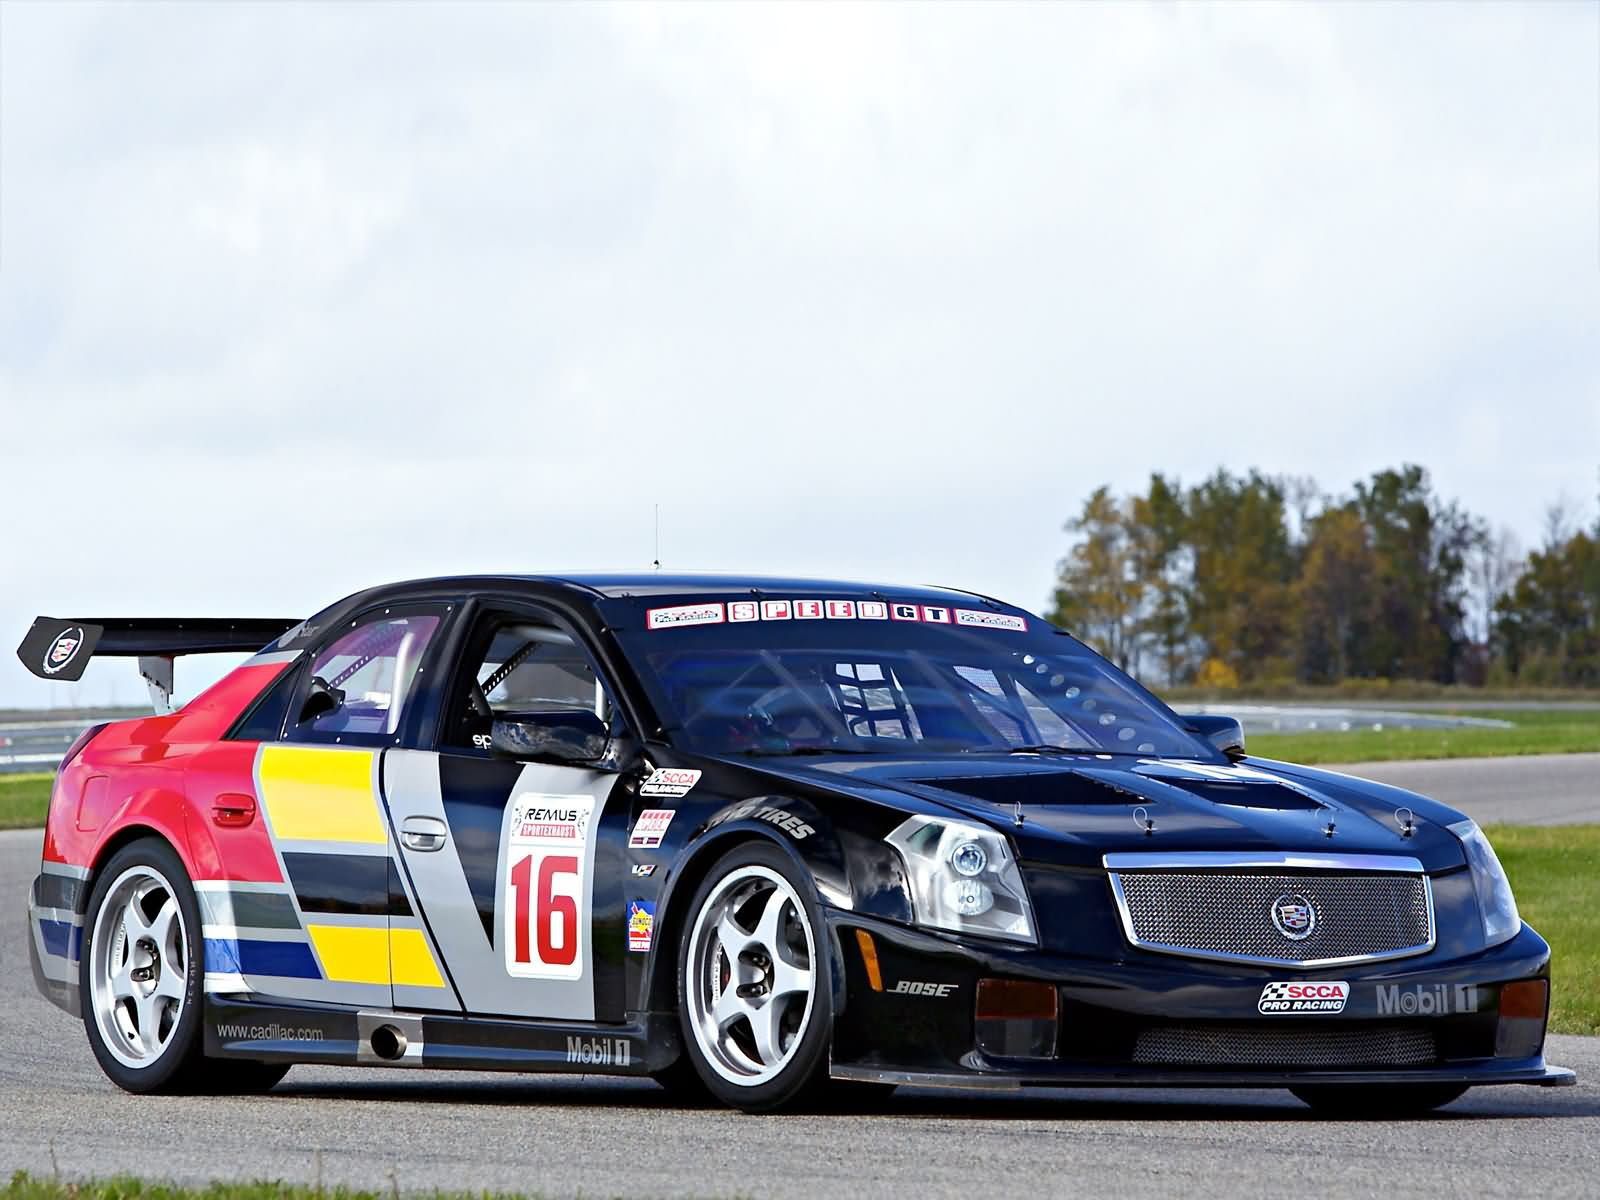 Cadillac CTS-V Race Car photos - PhotoGallery with 14 pics ...